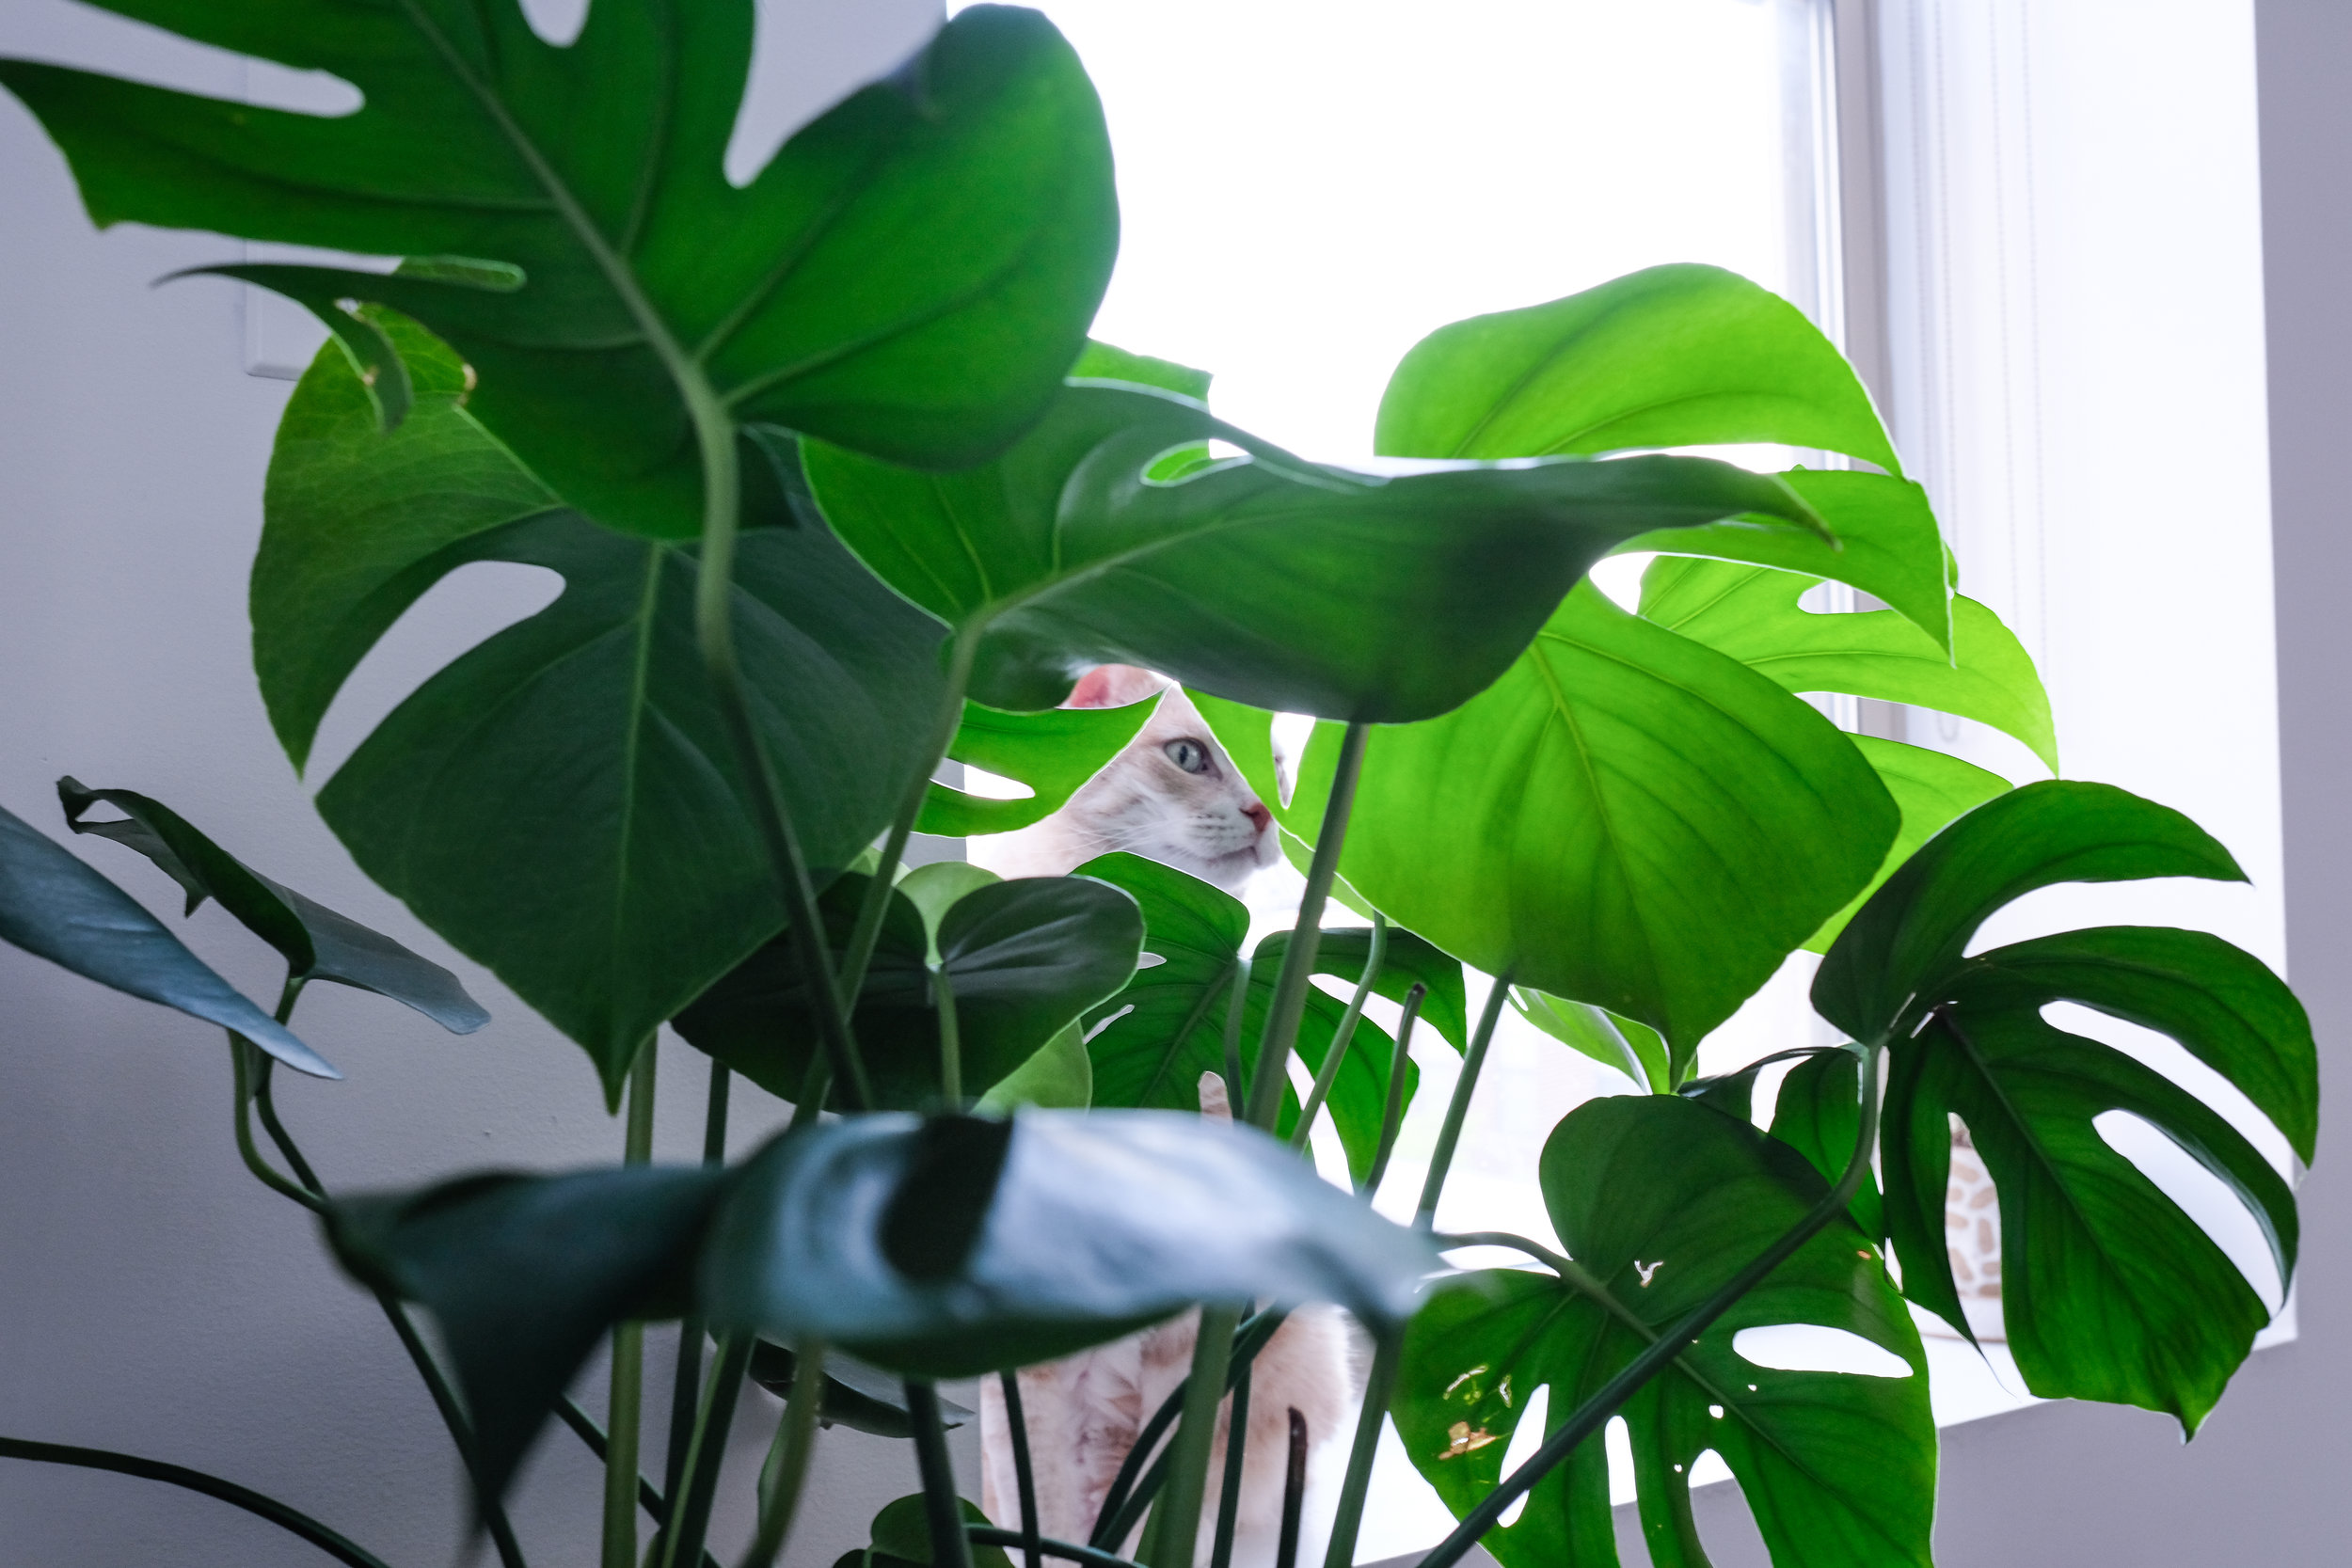 Just a boy and his monstera